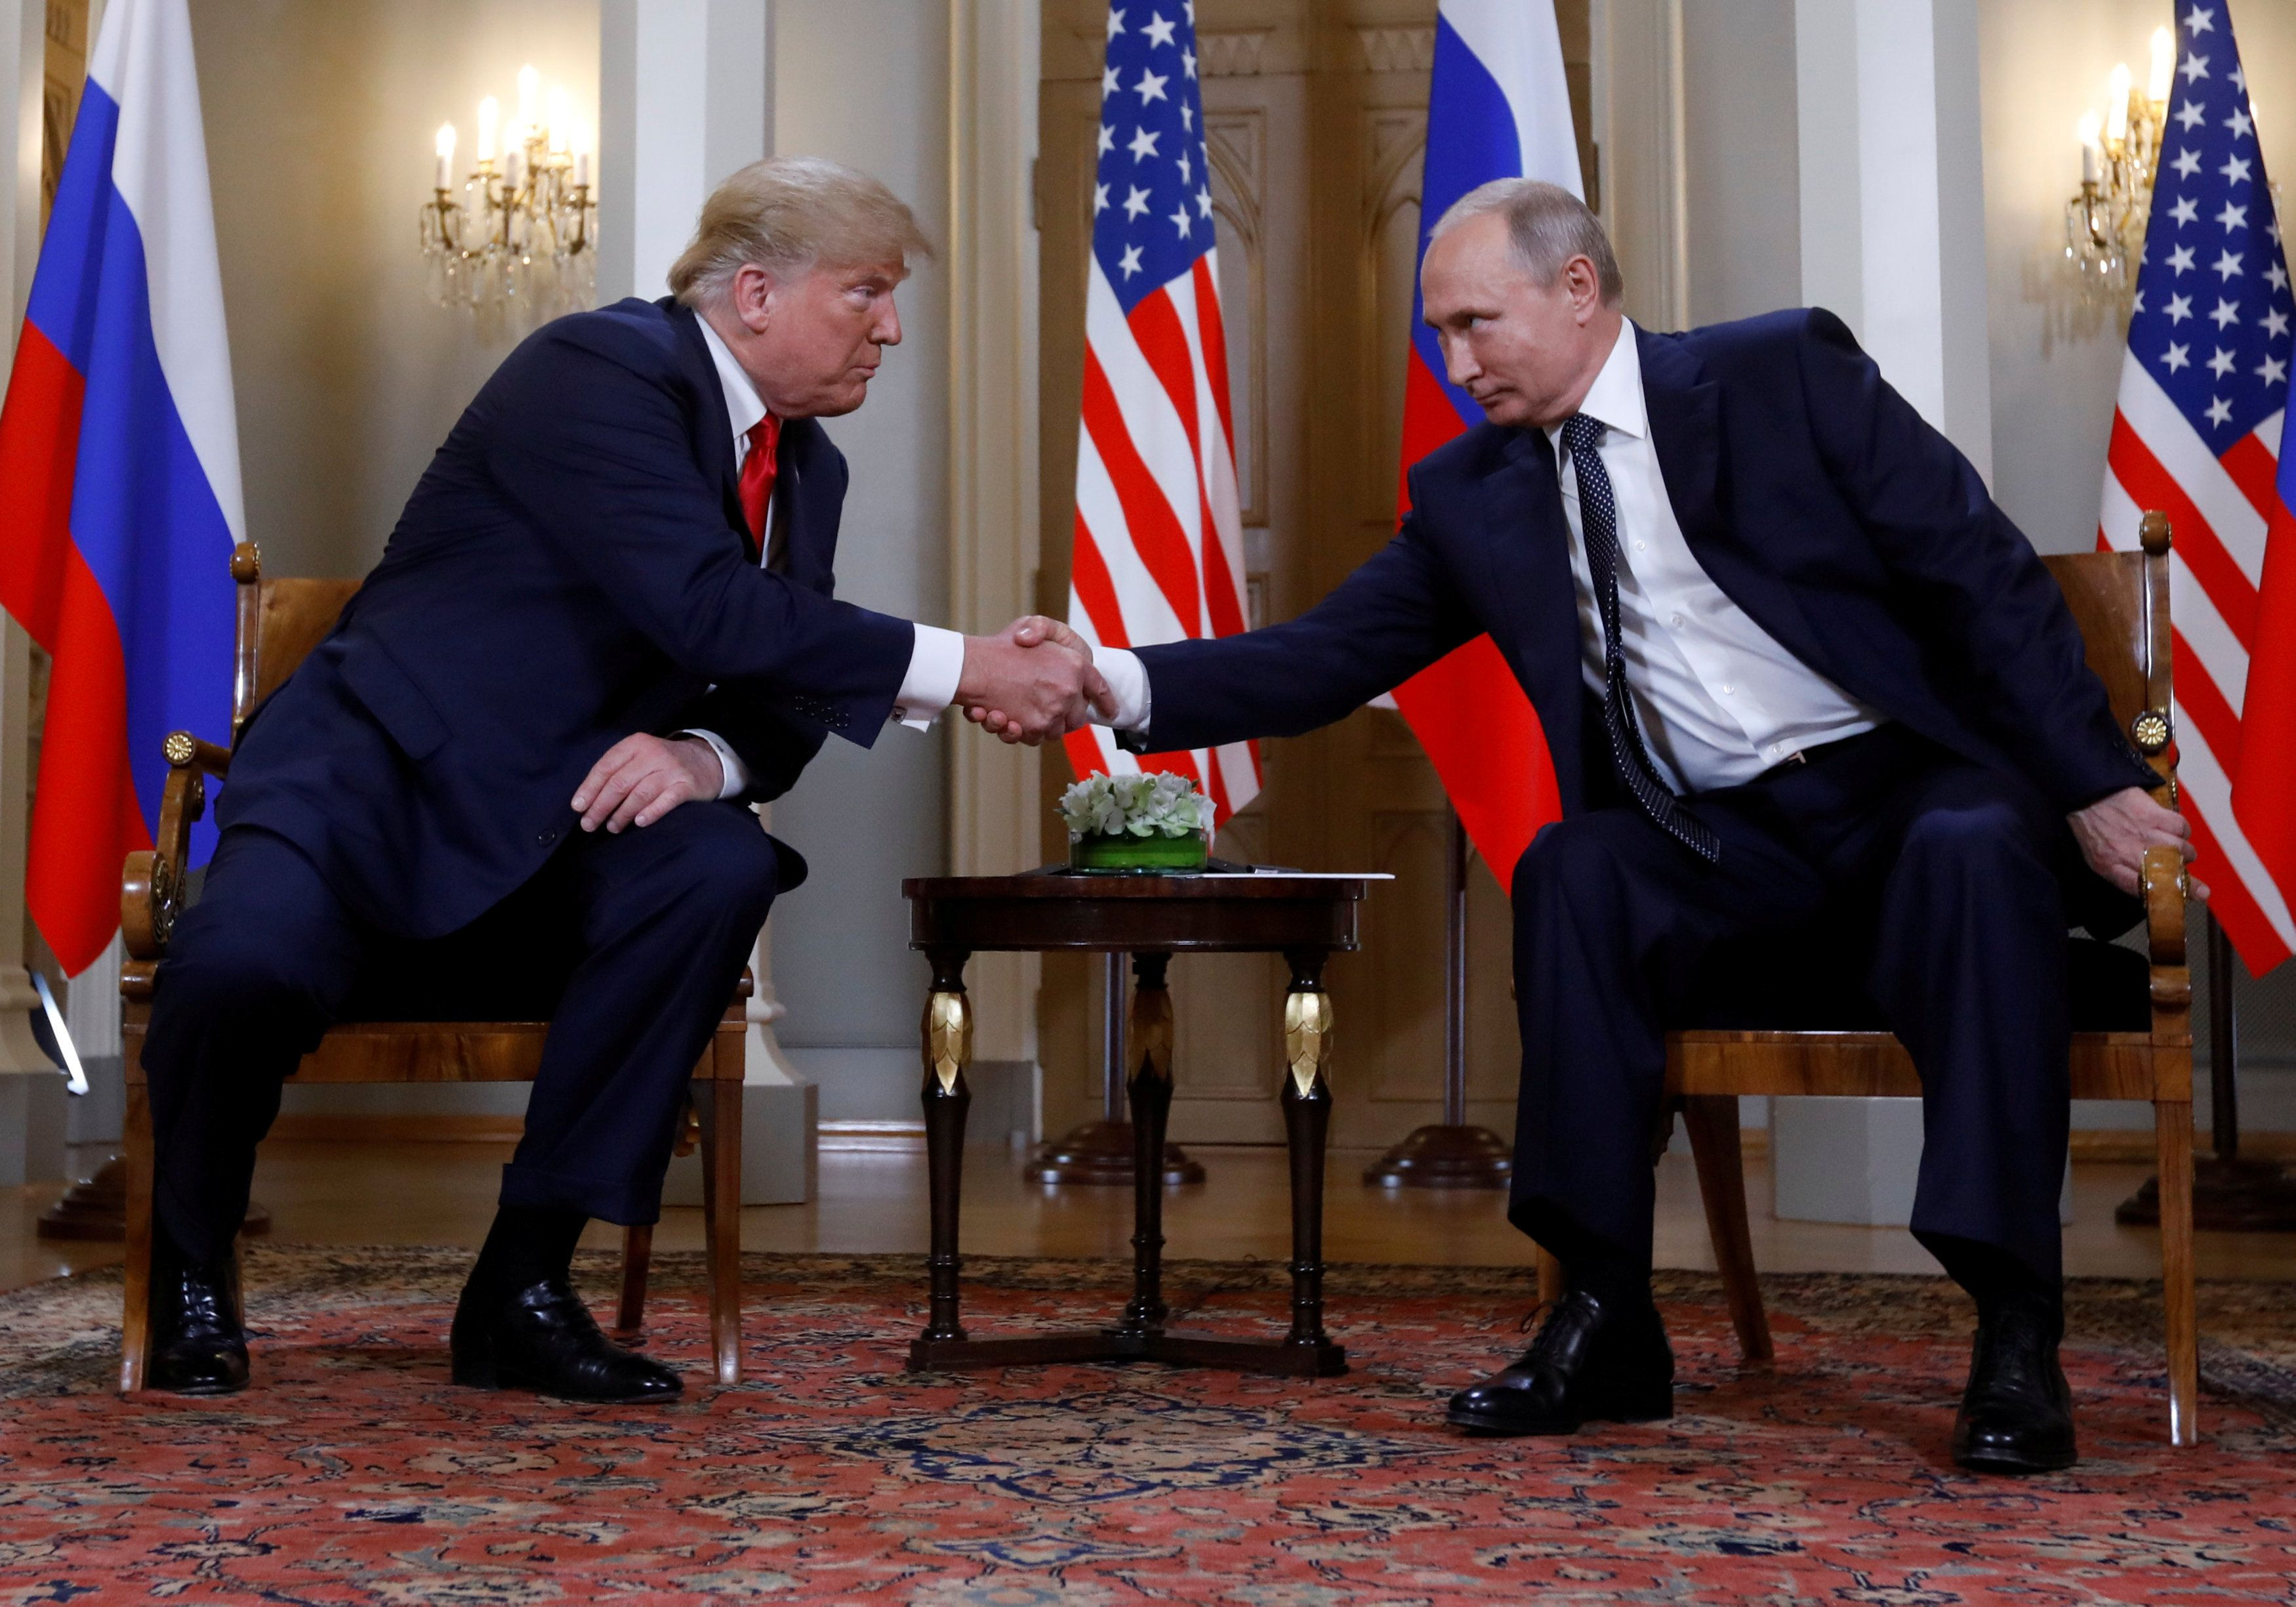 U.S. President Donald Trump and Russia's President Vladimir Putin shake hands as they meet in Helsinki, Finland July 16, 2018. REUTERS/Kevin Lamarque     TPX IMAGES OF THE DAY